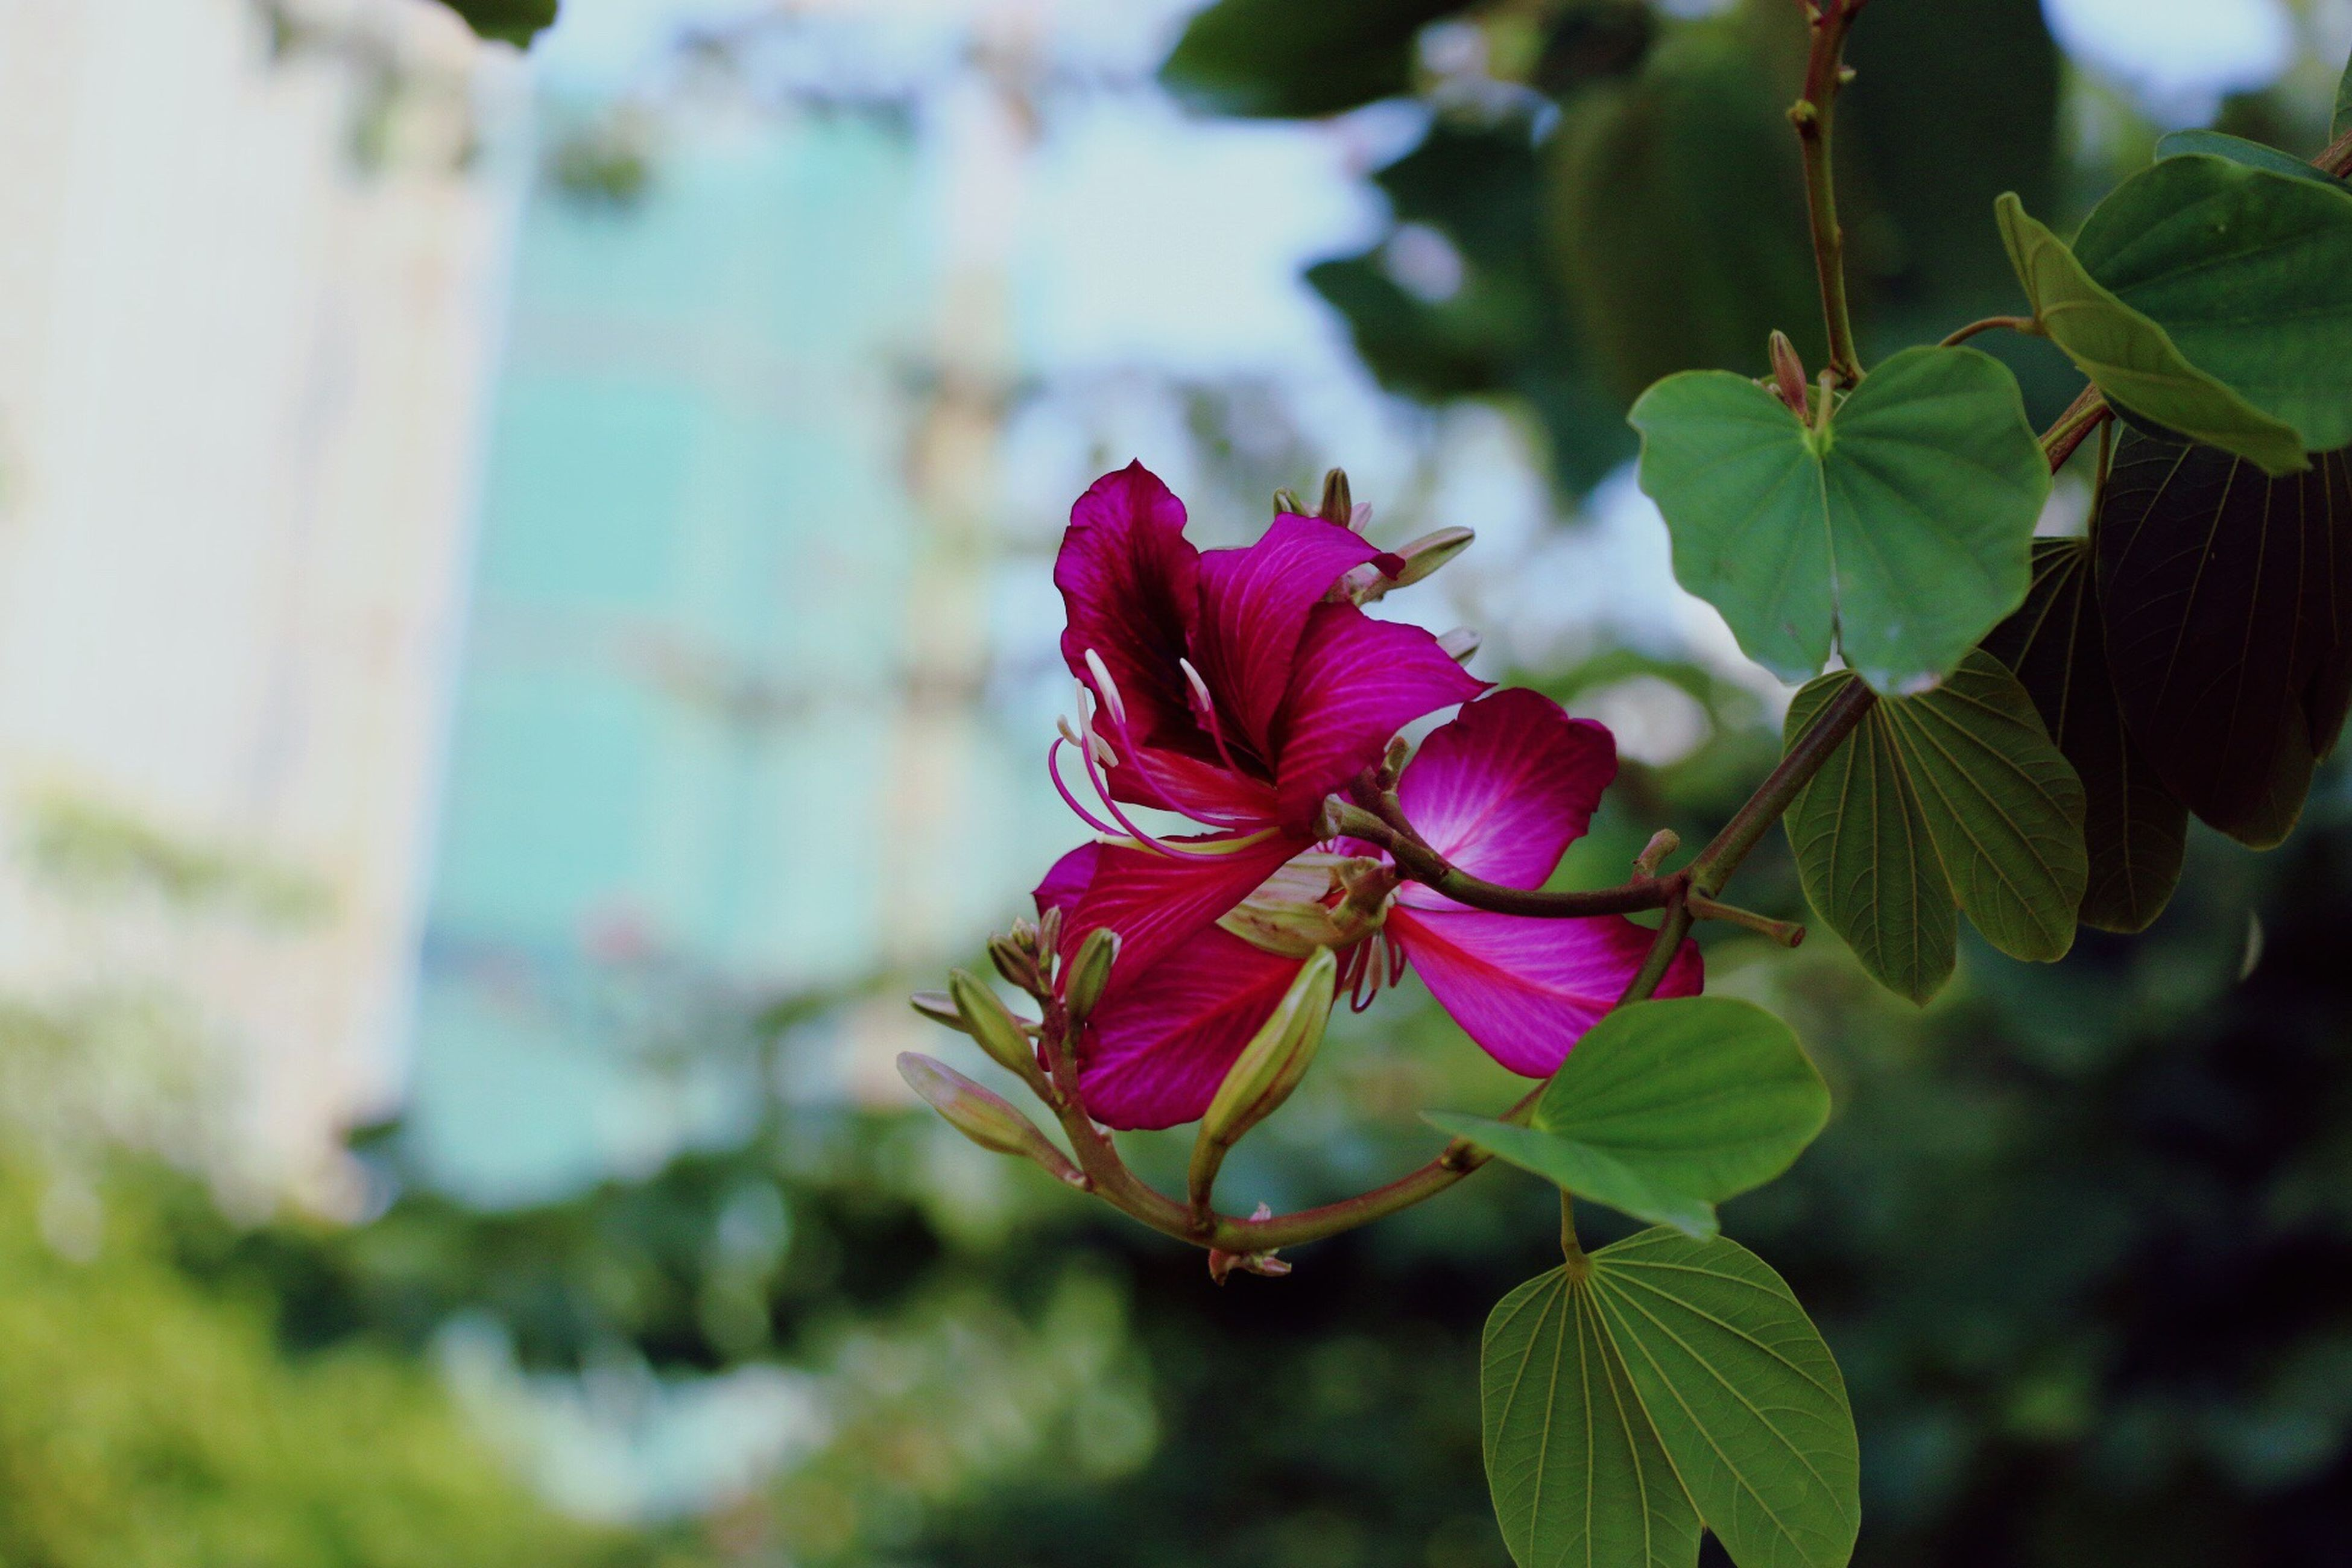 flower, leaf, freshness, growth, petal, fragility, focus on foreground, close-up, plant, pink color, beauty in nature, nature, flower head, blooming, green color, bud, day, outdoors, selective focus, no people